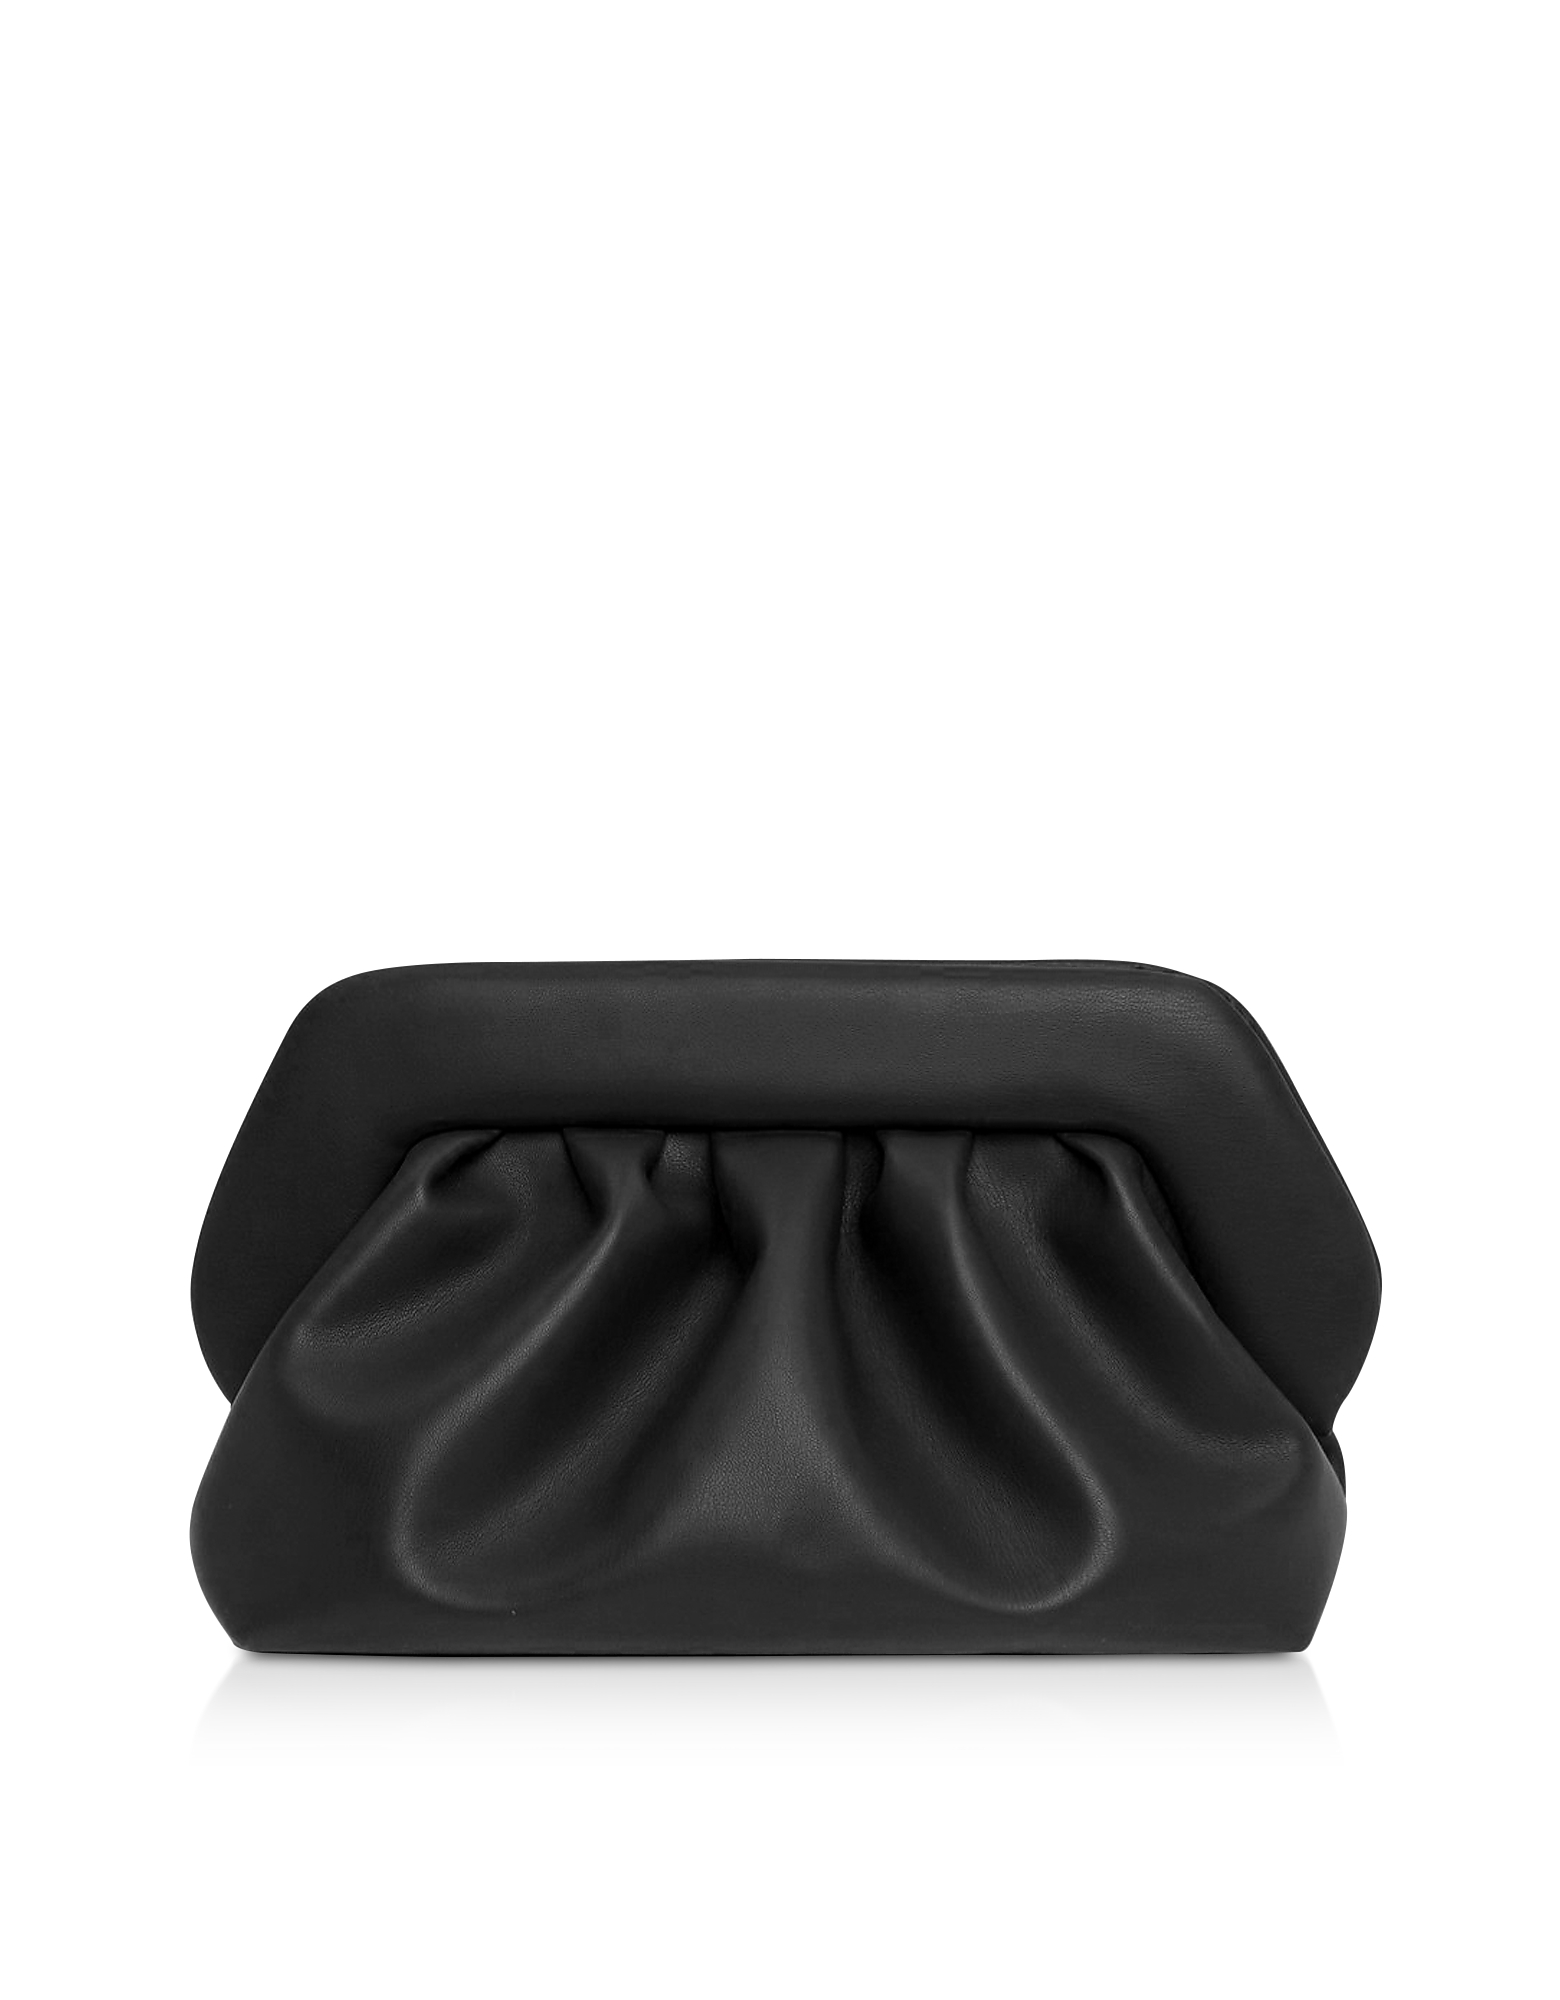 THEMOIRÉ Designer Handbags, Black Eco-Leather Pouch Bag